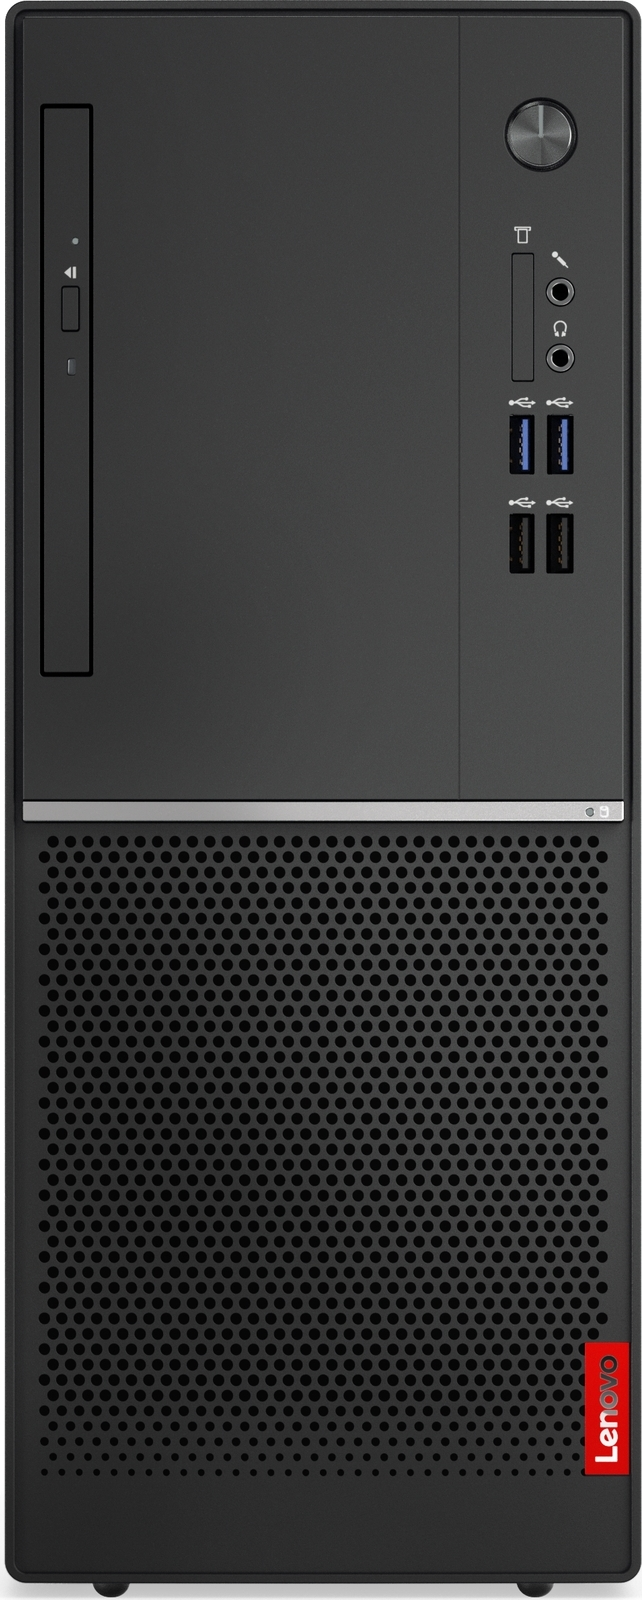 Системный блок Lenovo V520-15IKL MT, 10NK0056RU, черный пк lenovo thinkcentre m710q tiny slim i3 7100t 4gb 500gb 7 2k hdg630 w10pro64 kb m черный